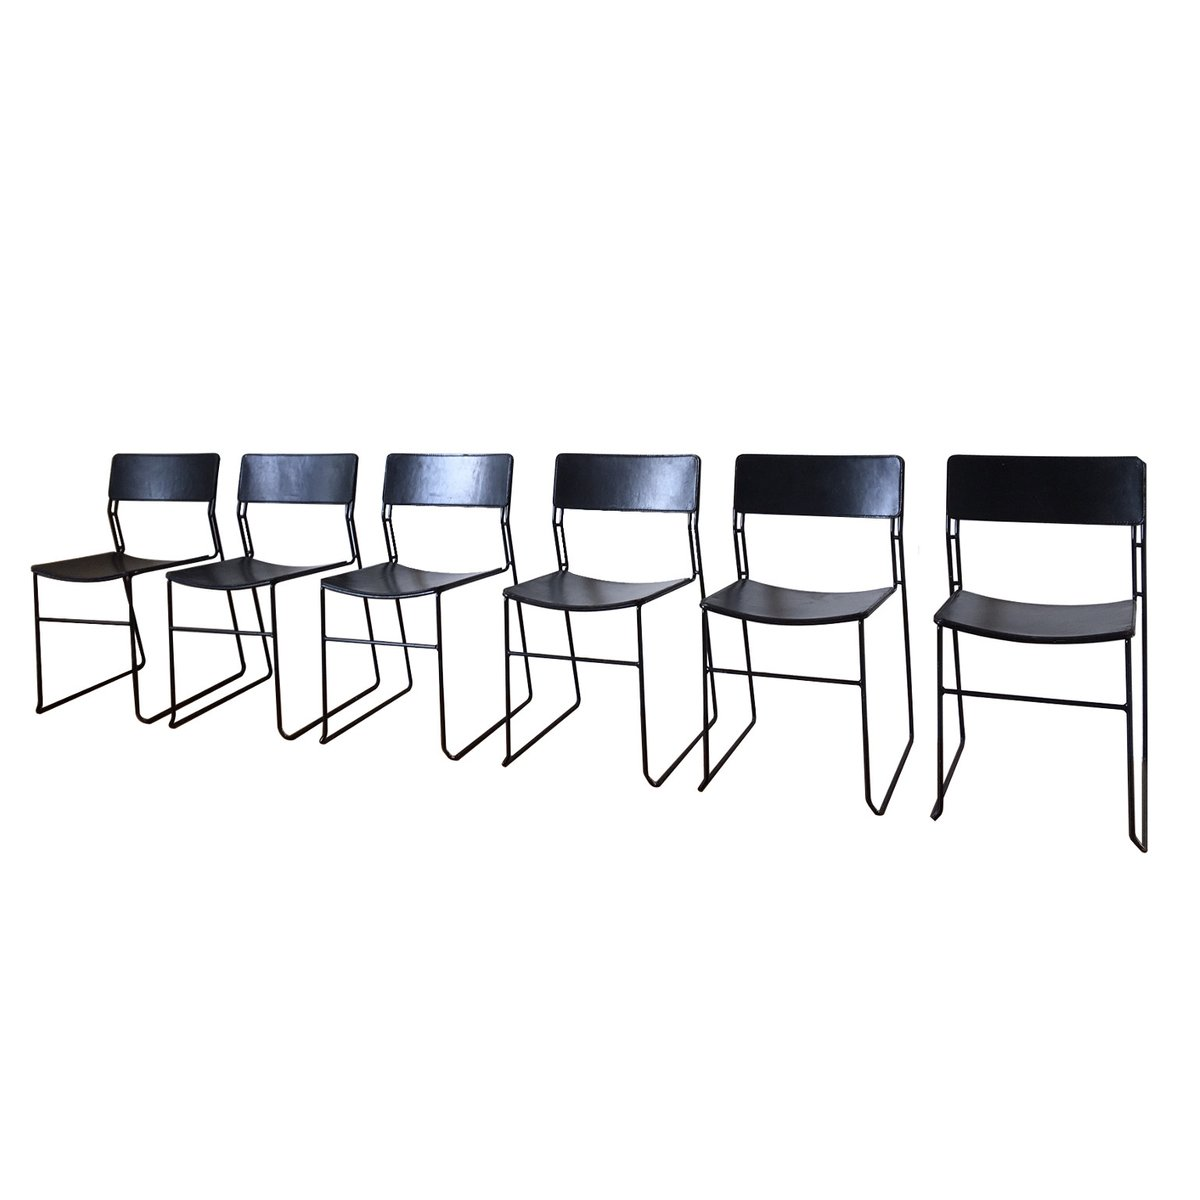 Italian Sultana Dining Chairs In Metal And Leather From